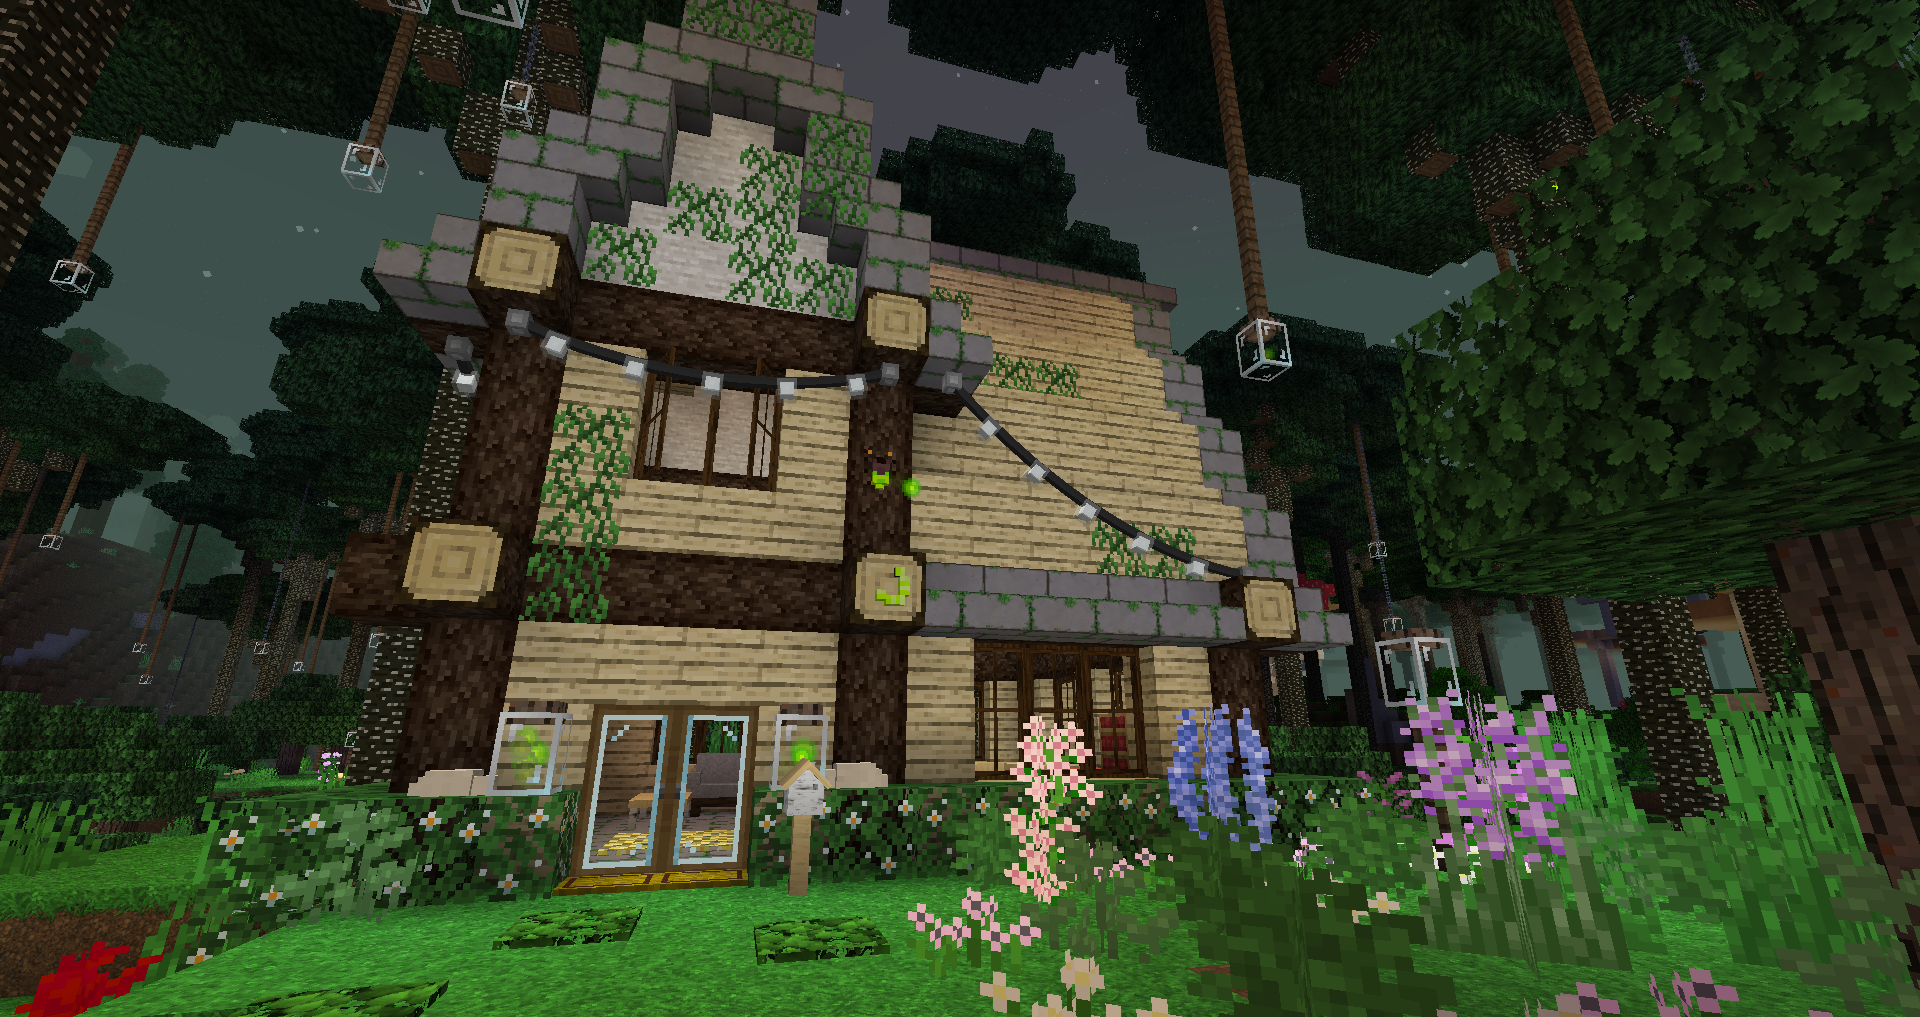 An overgrown house build with many kinds of flowers, fairy lights, and hanging firefly jars.